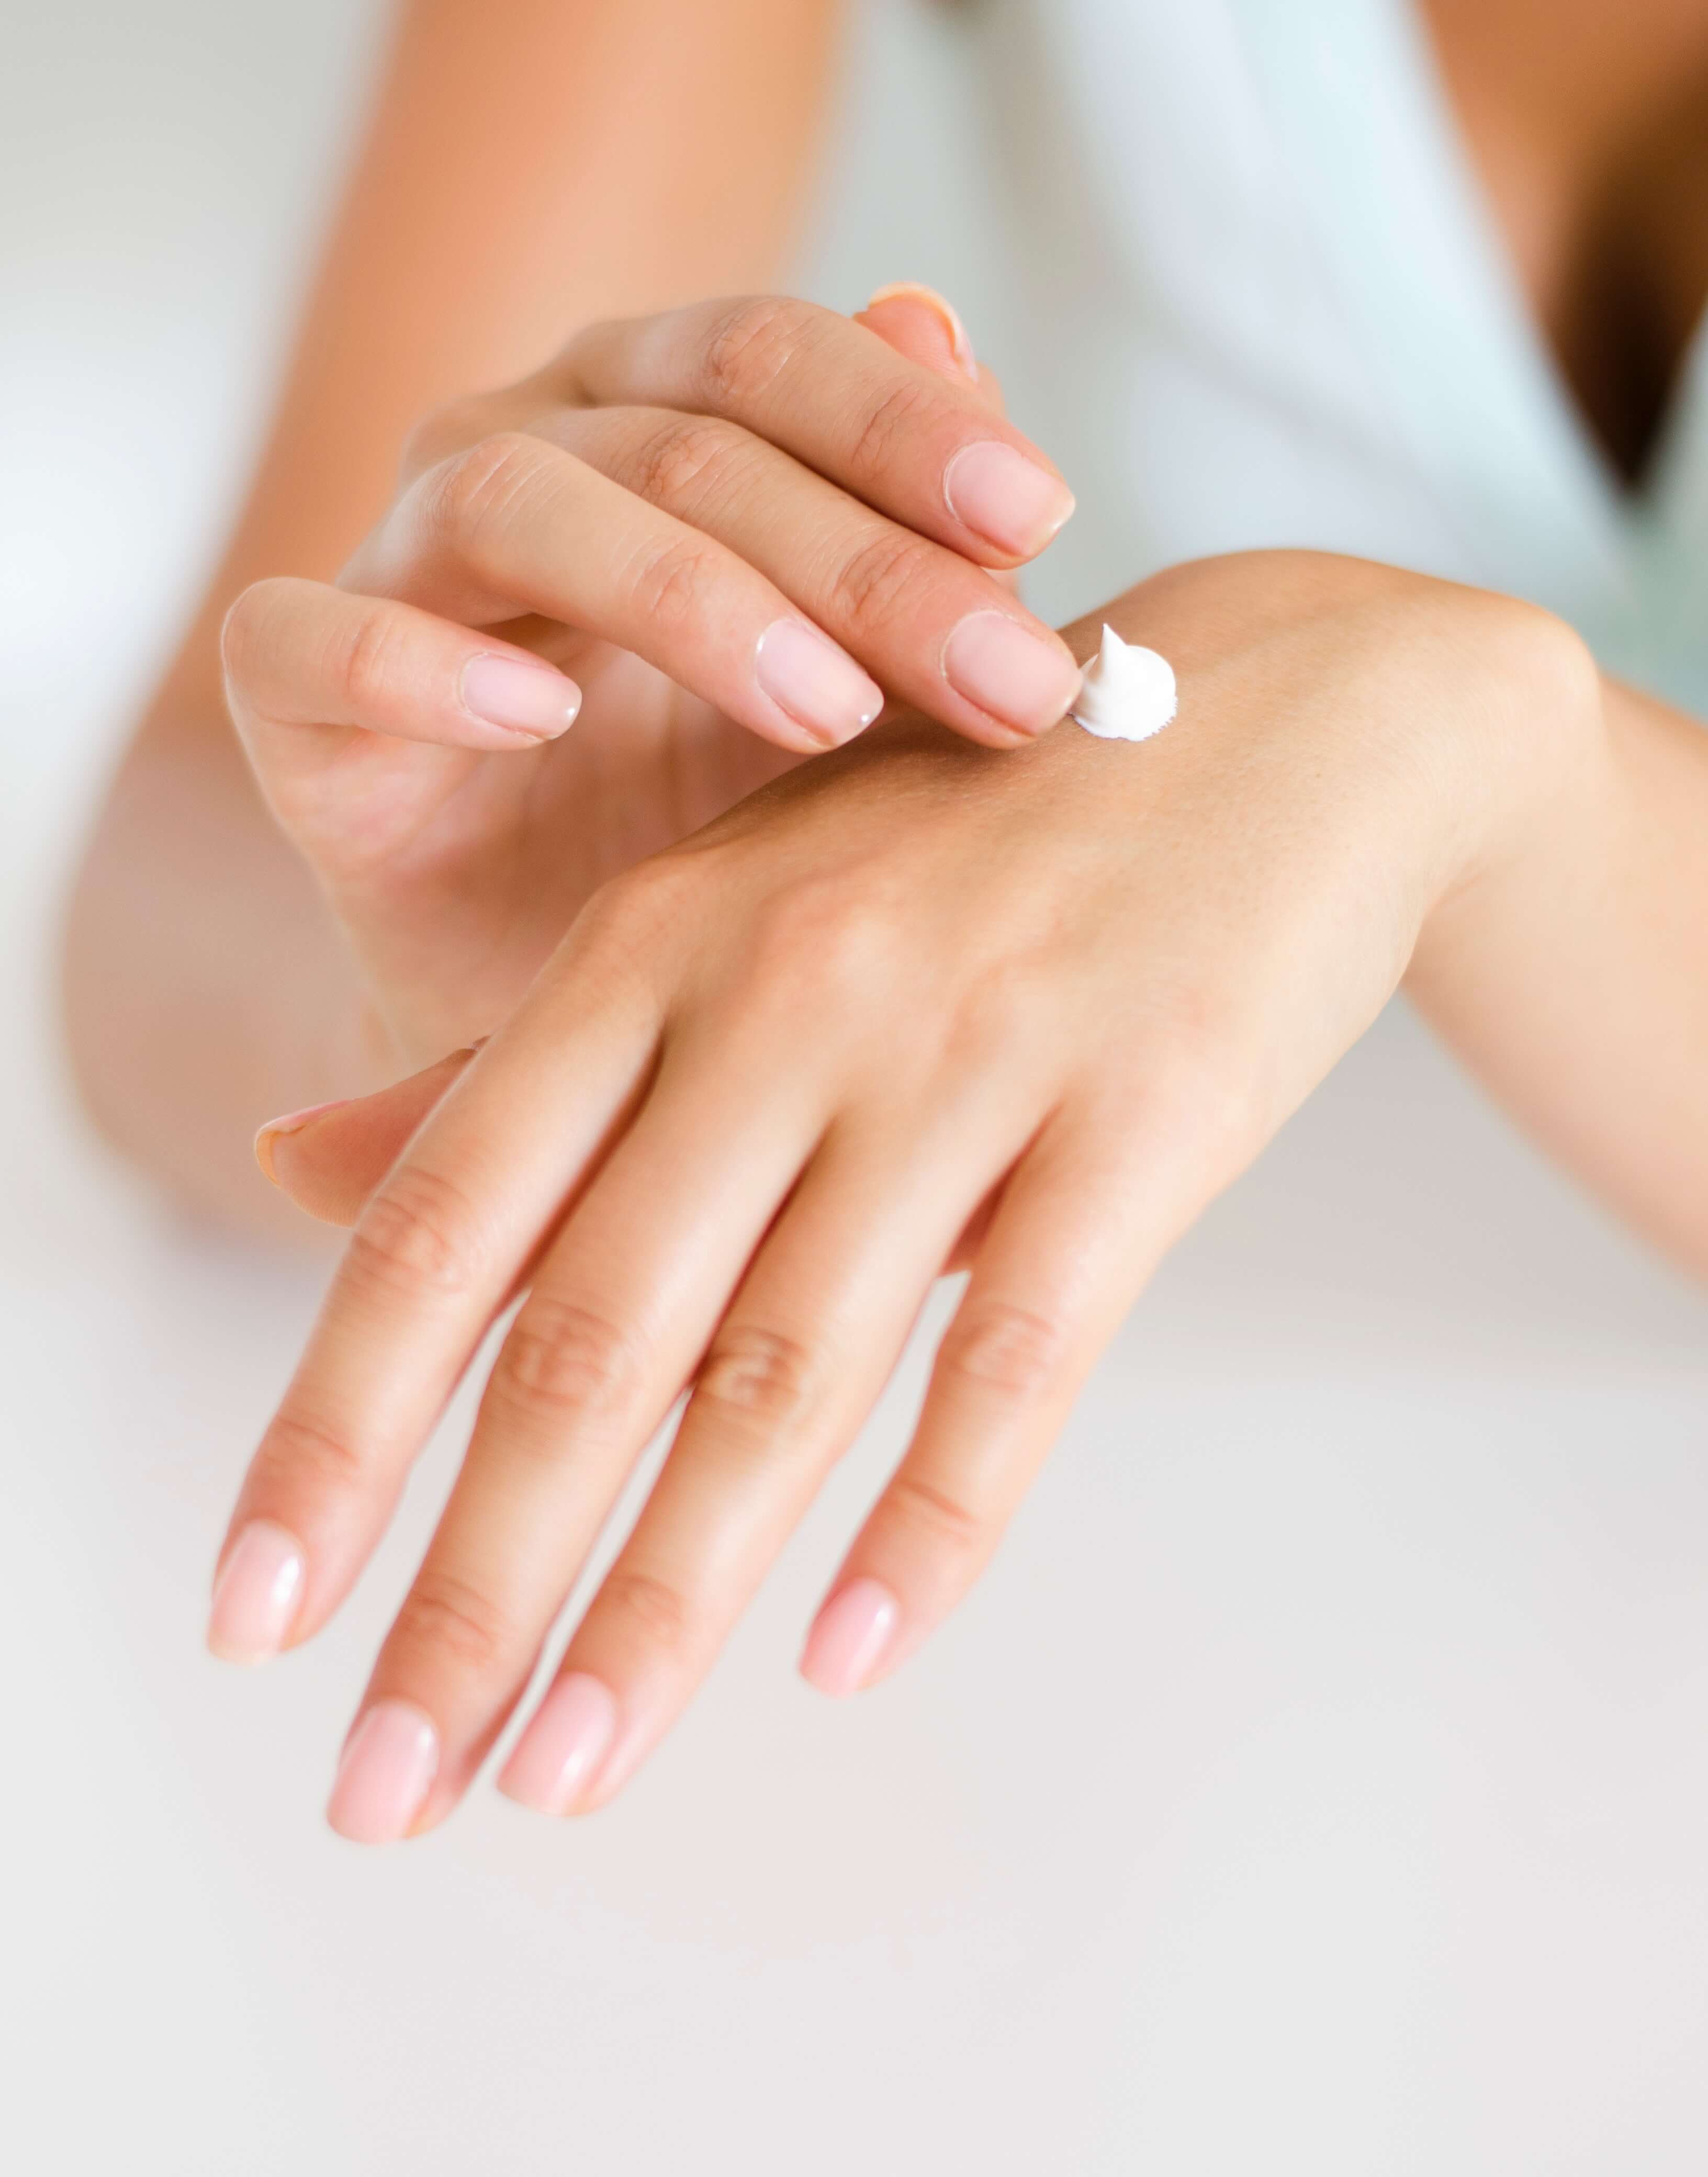 Applying body lotion to hands